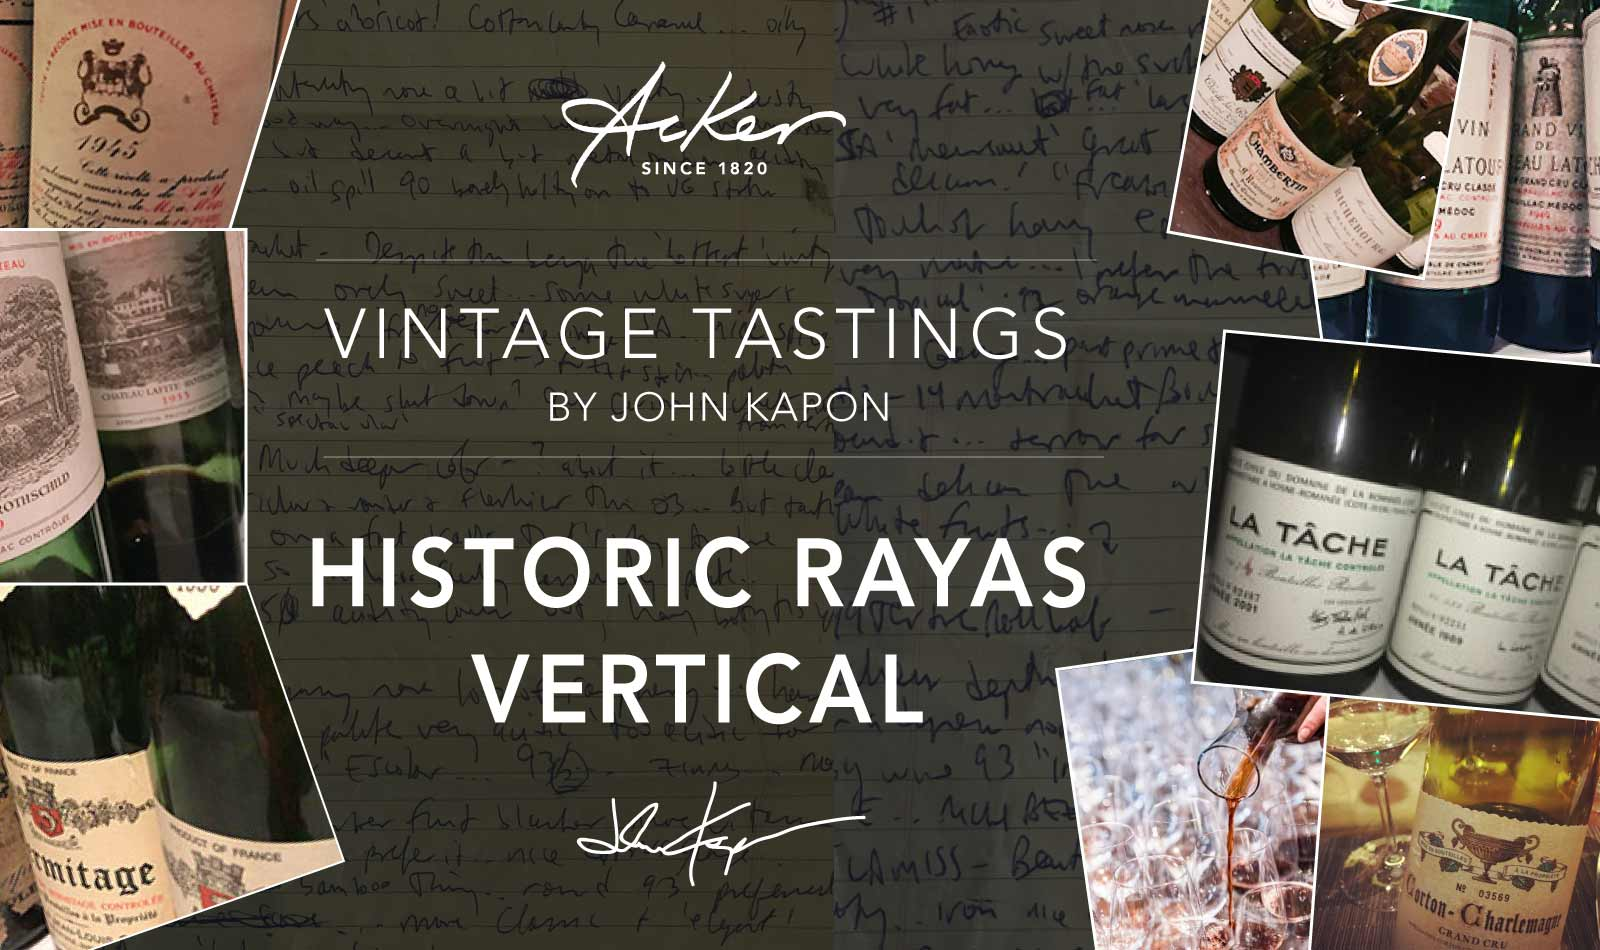 Historic Rayas Vertical